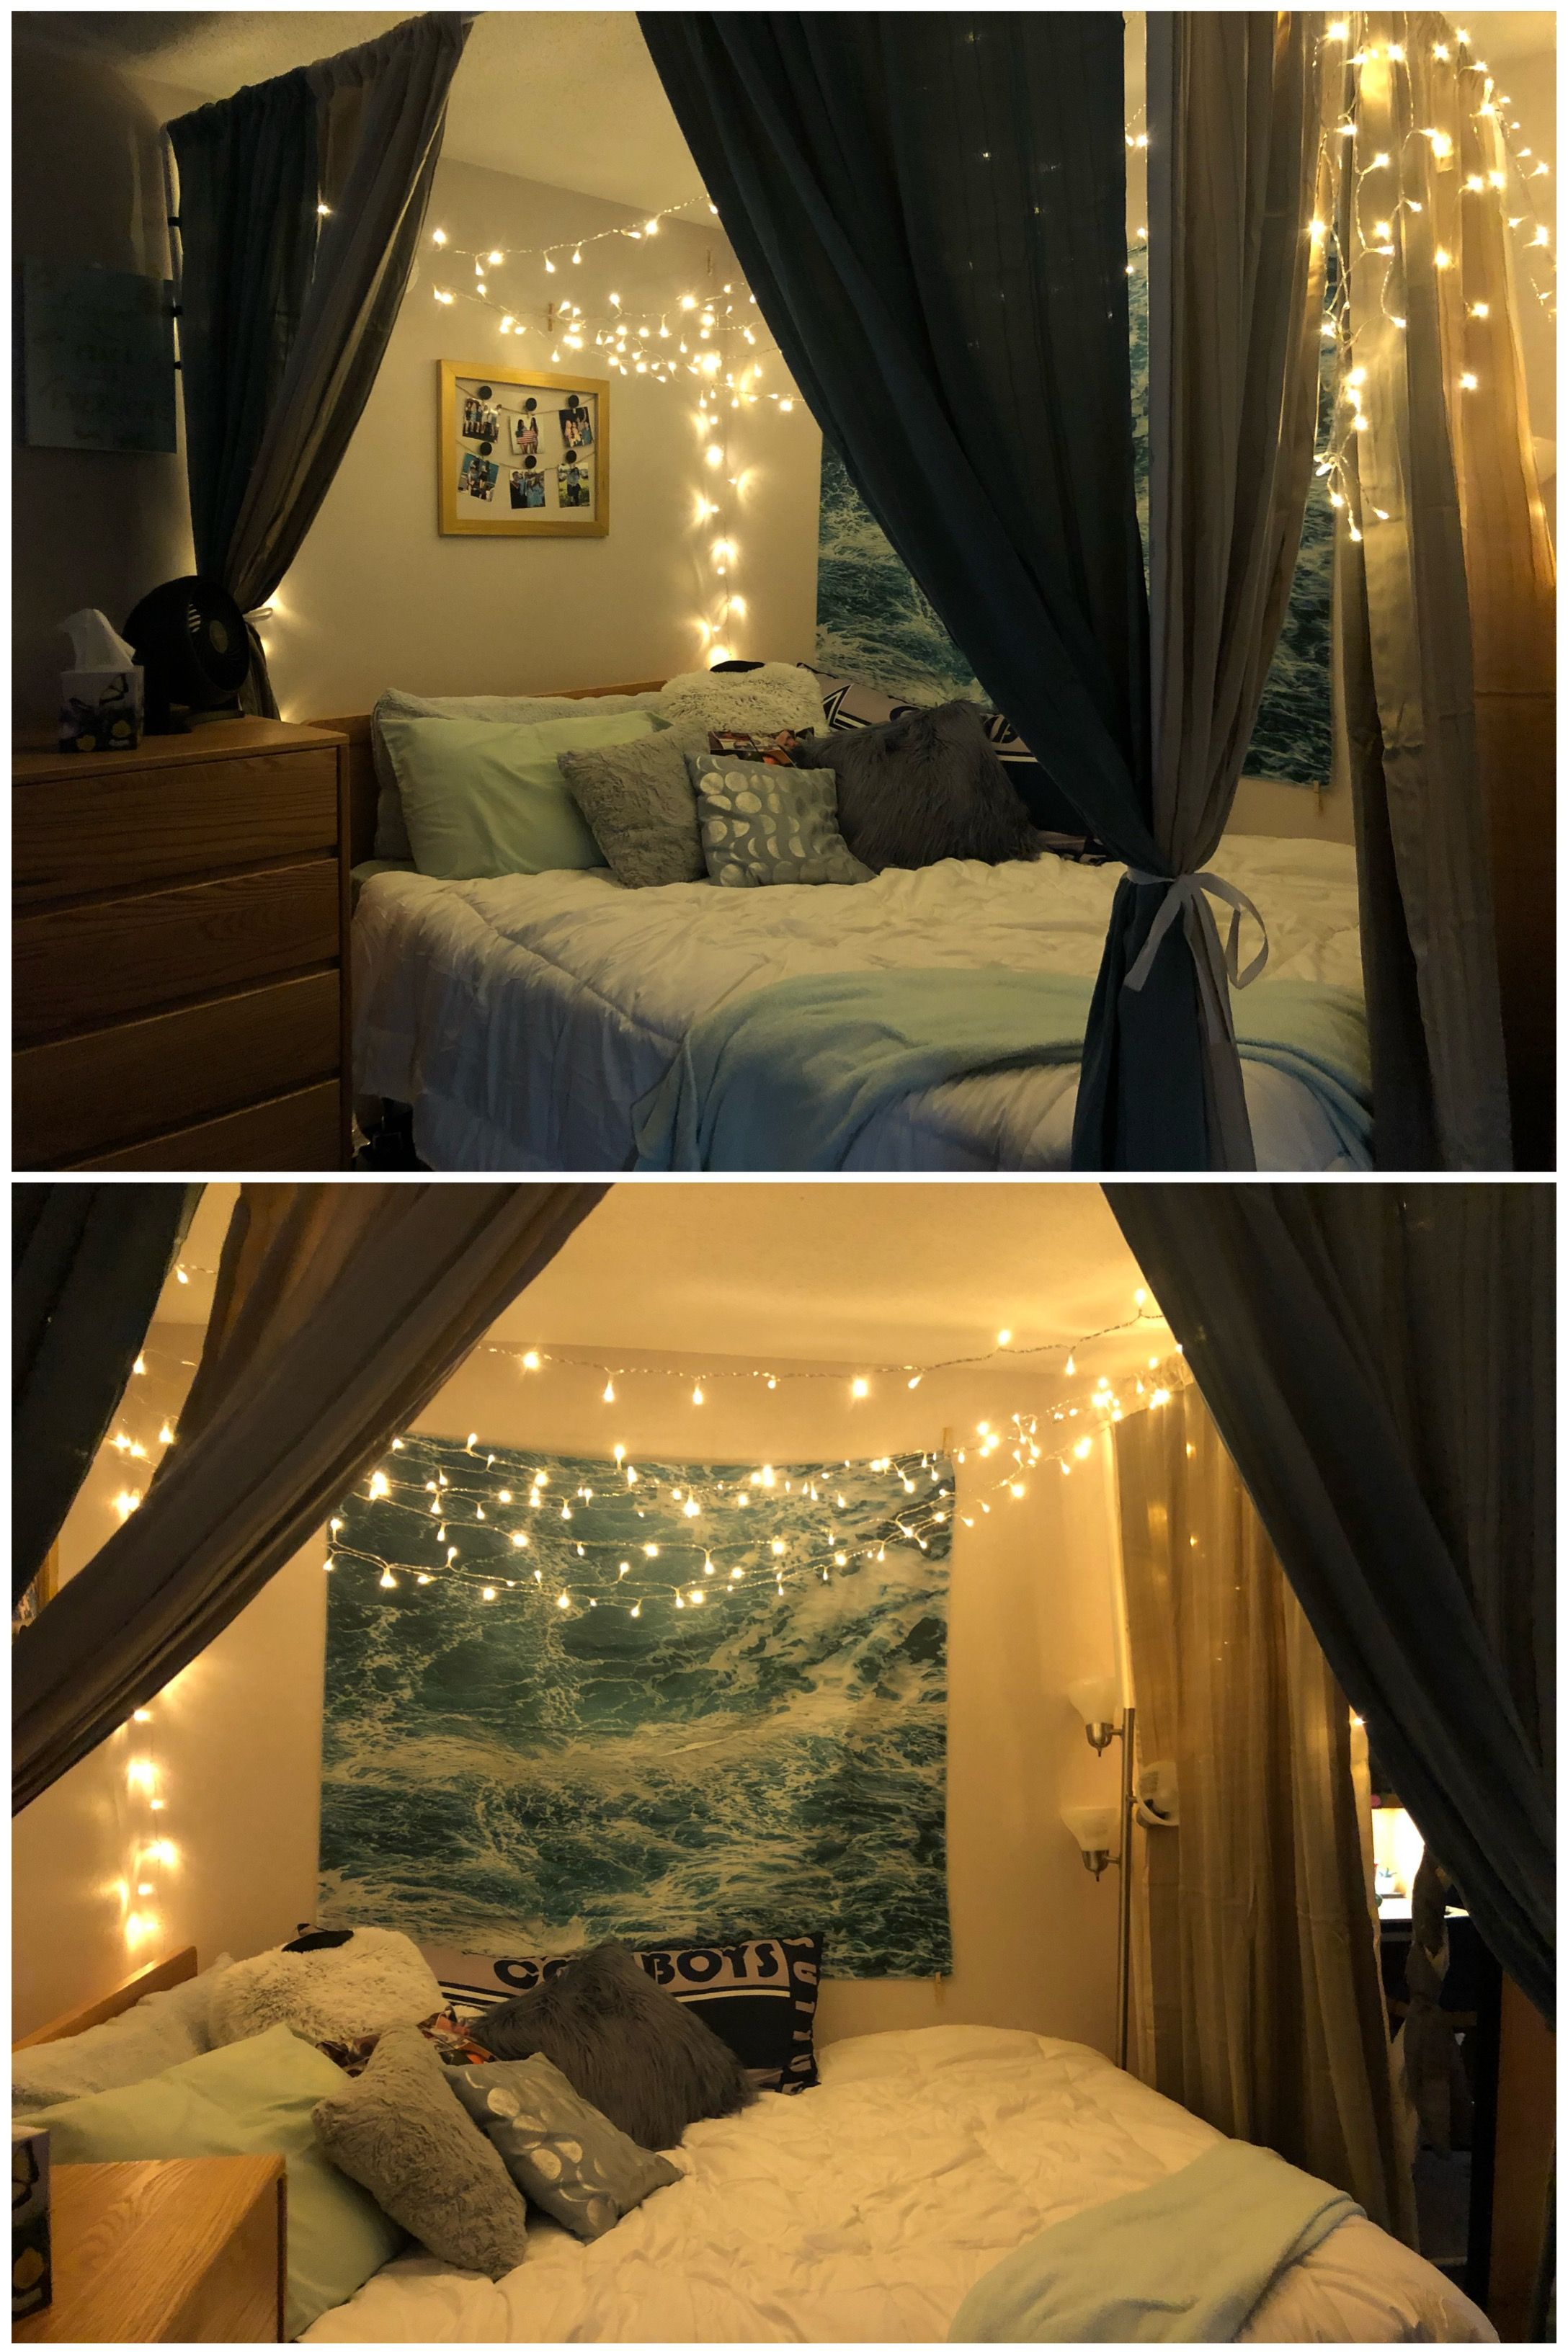 Use Pvc Piping To Hang Curtains Around Bed In Dorm Room Adds Privacy